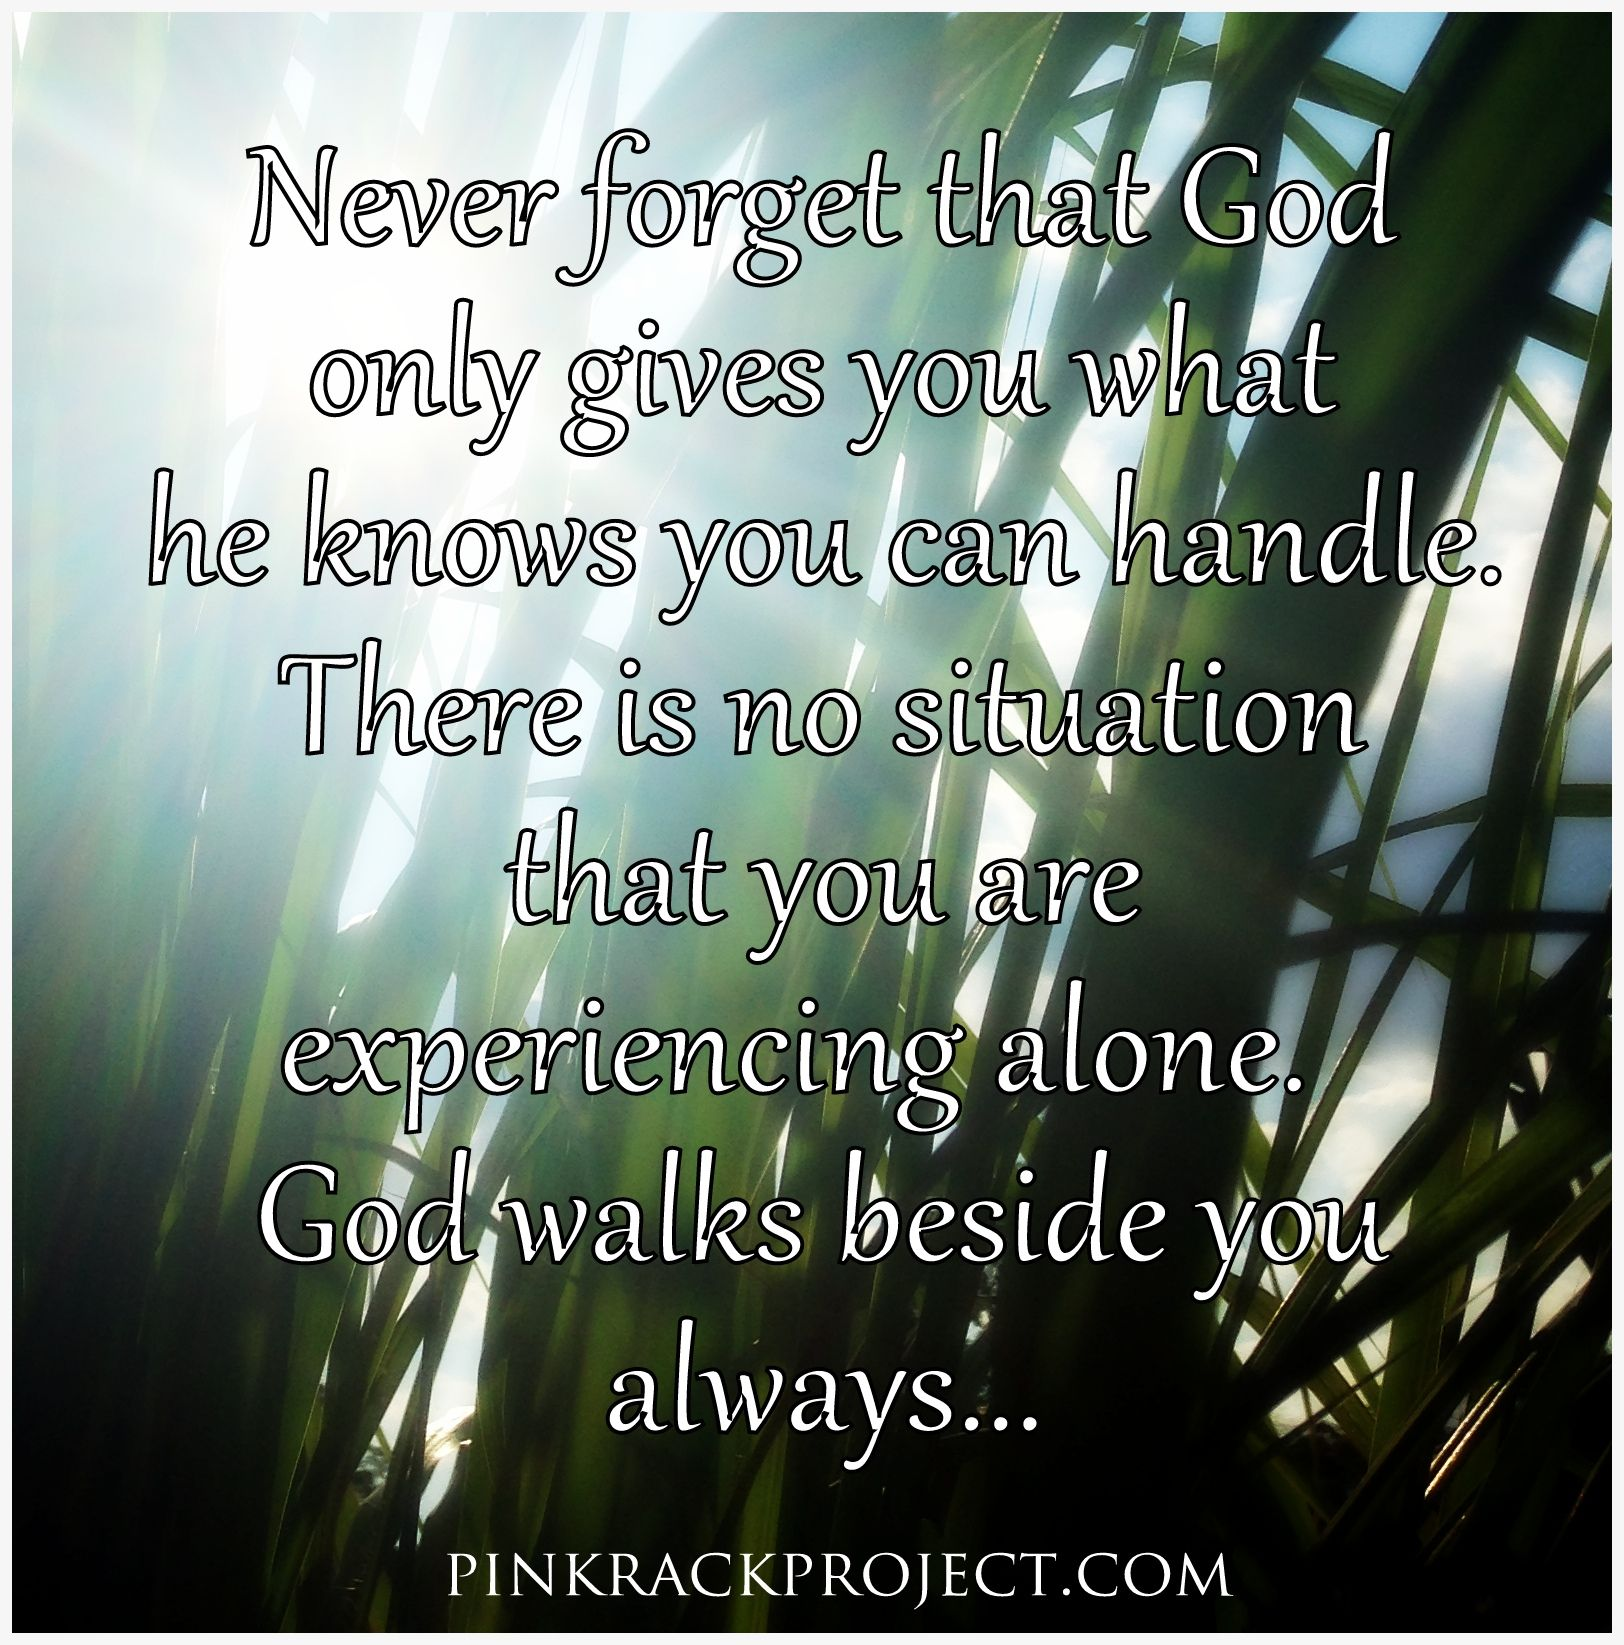 Never Forget That God Only Gives You What He Knows You Can Handle